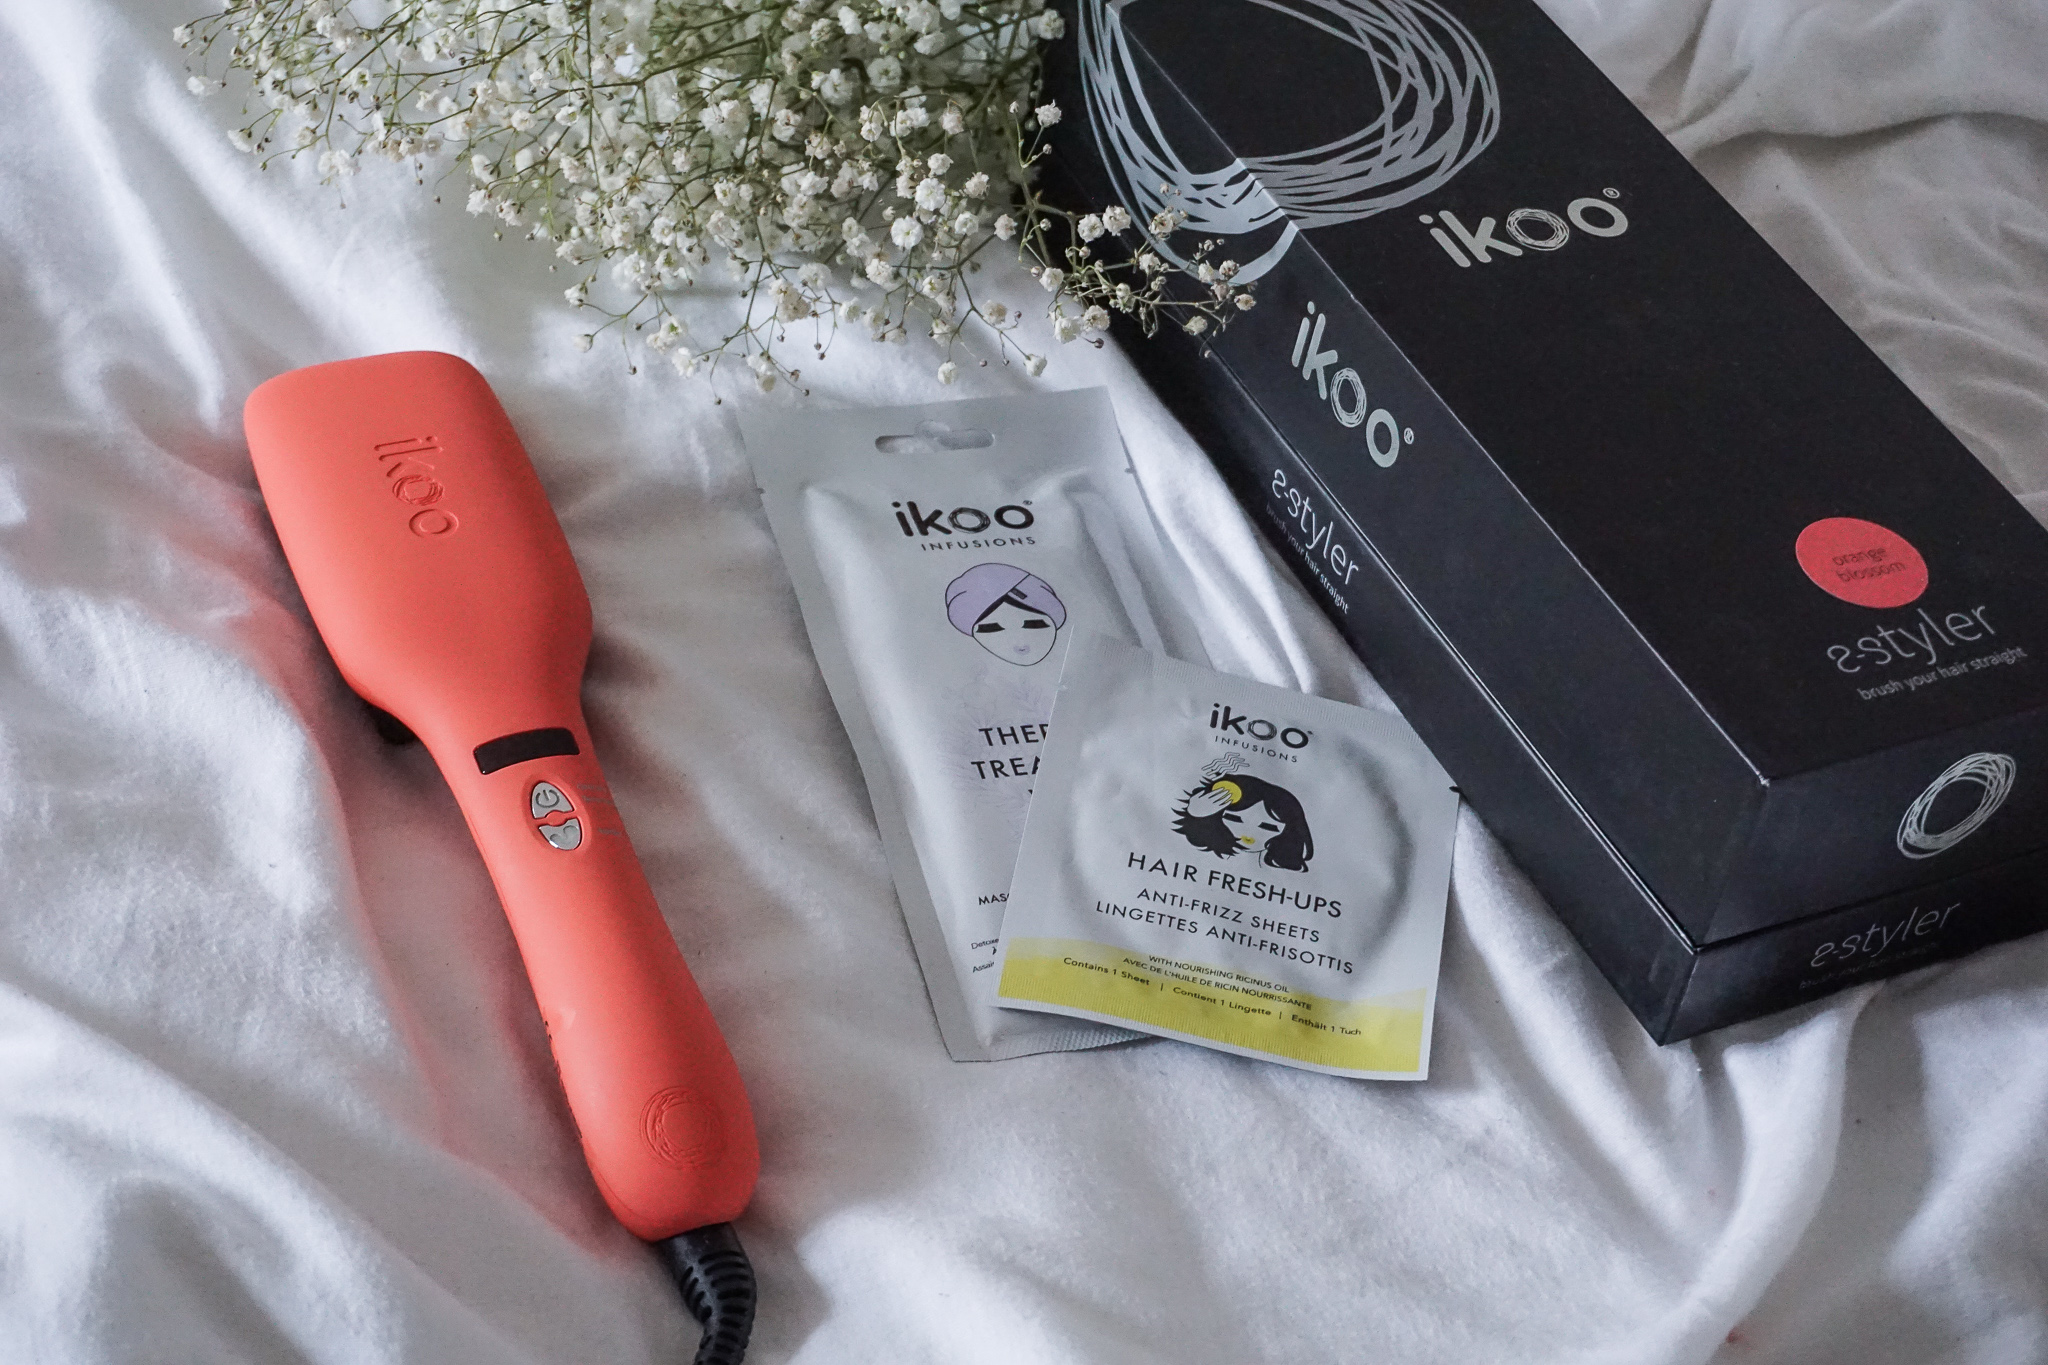 ikoo brush e styler review